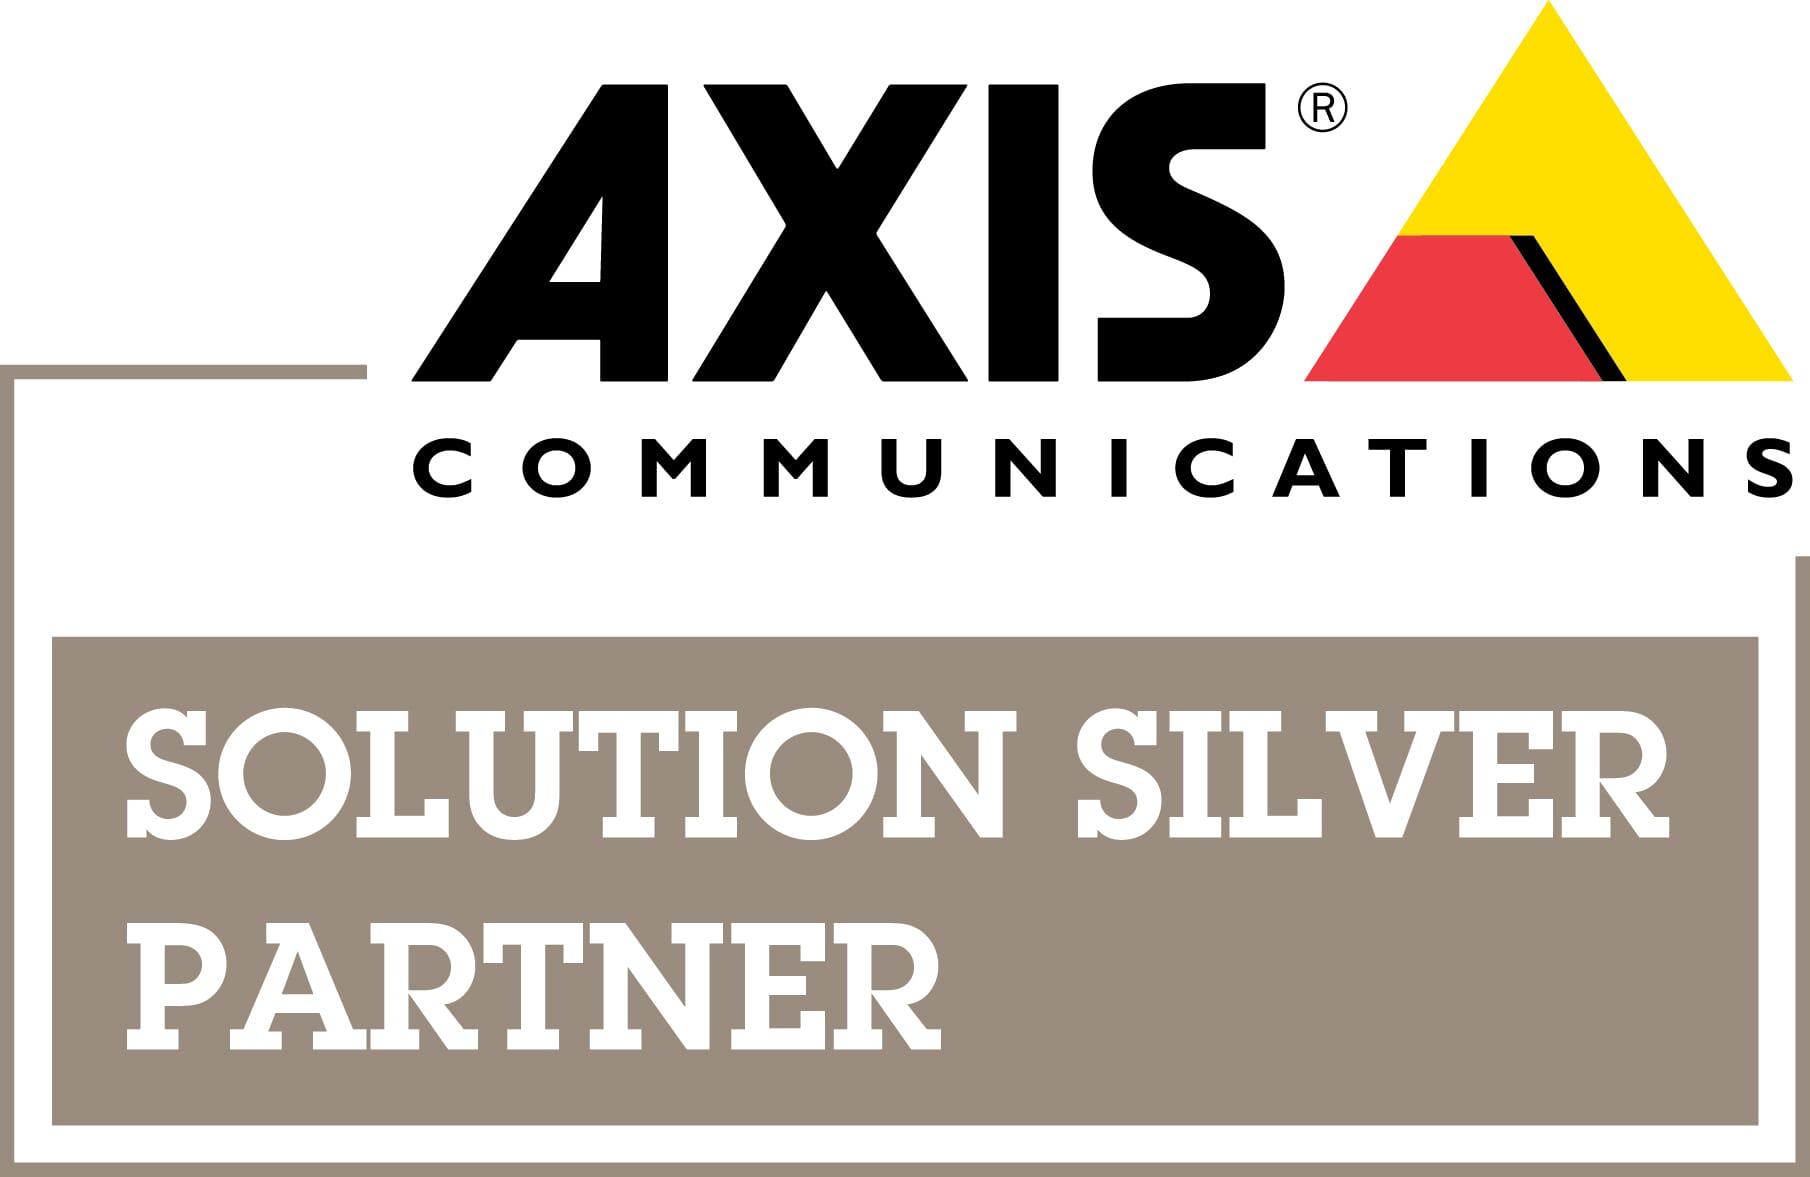 logo_axis_cpp_solution_silver_rgb.jpg